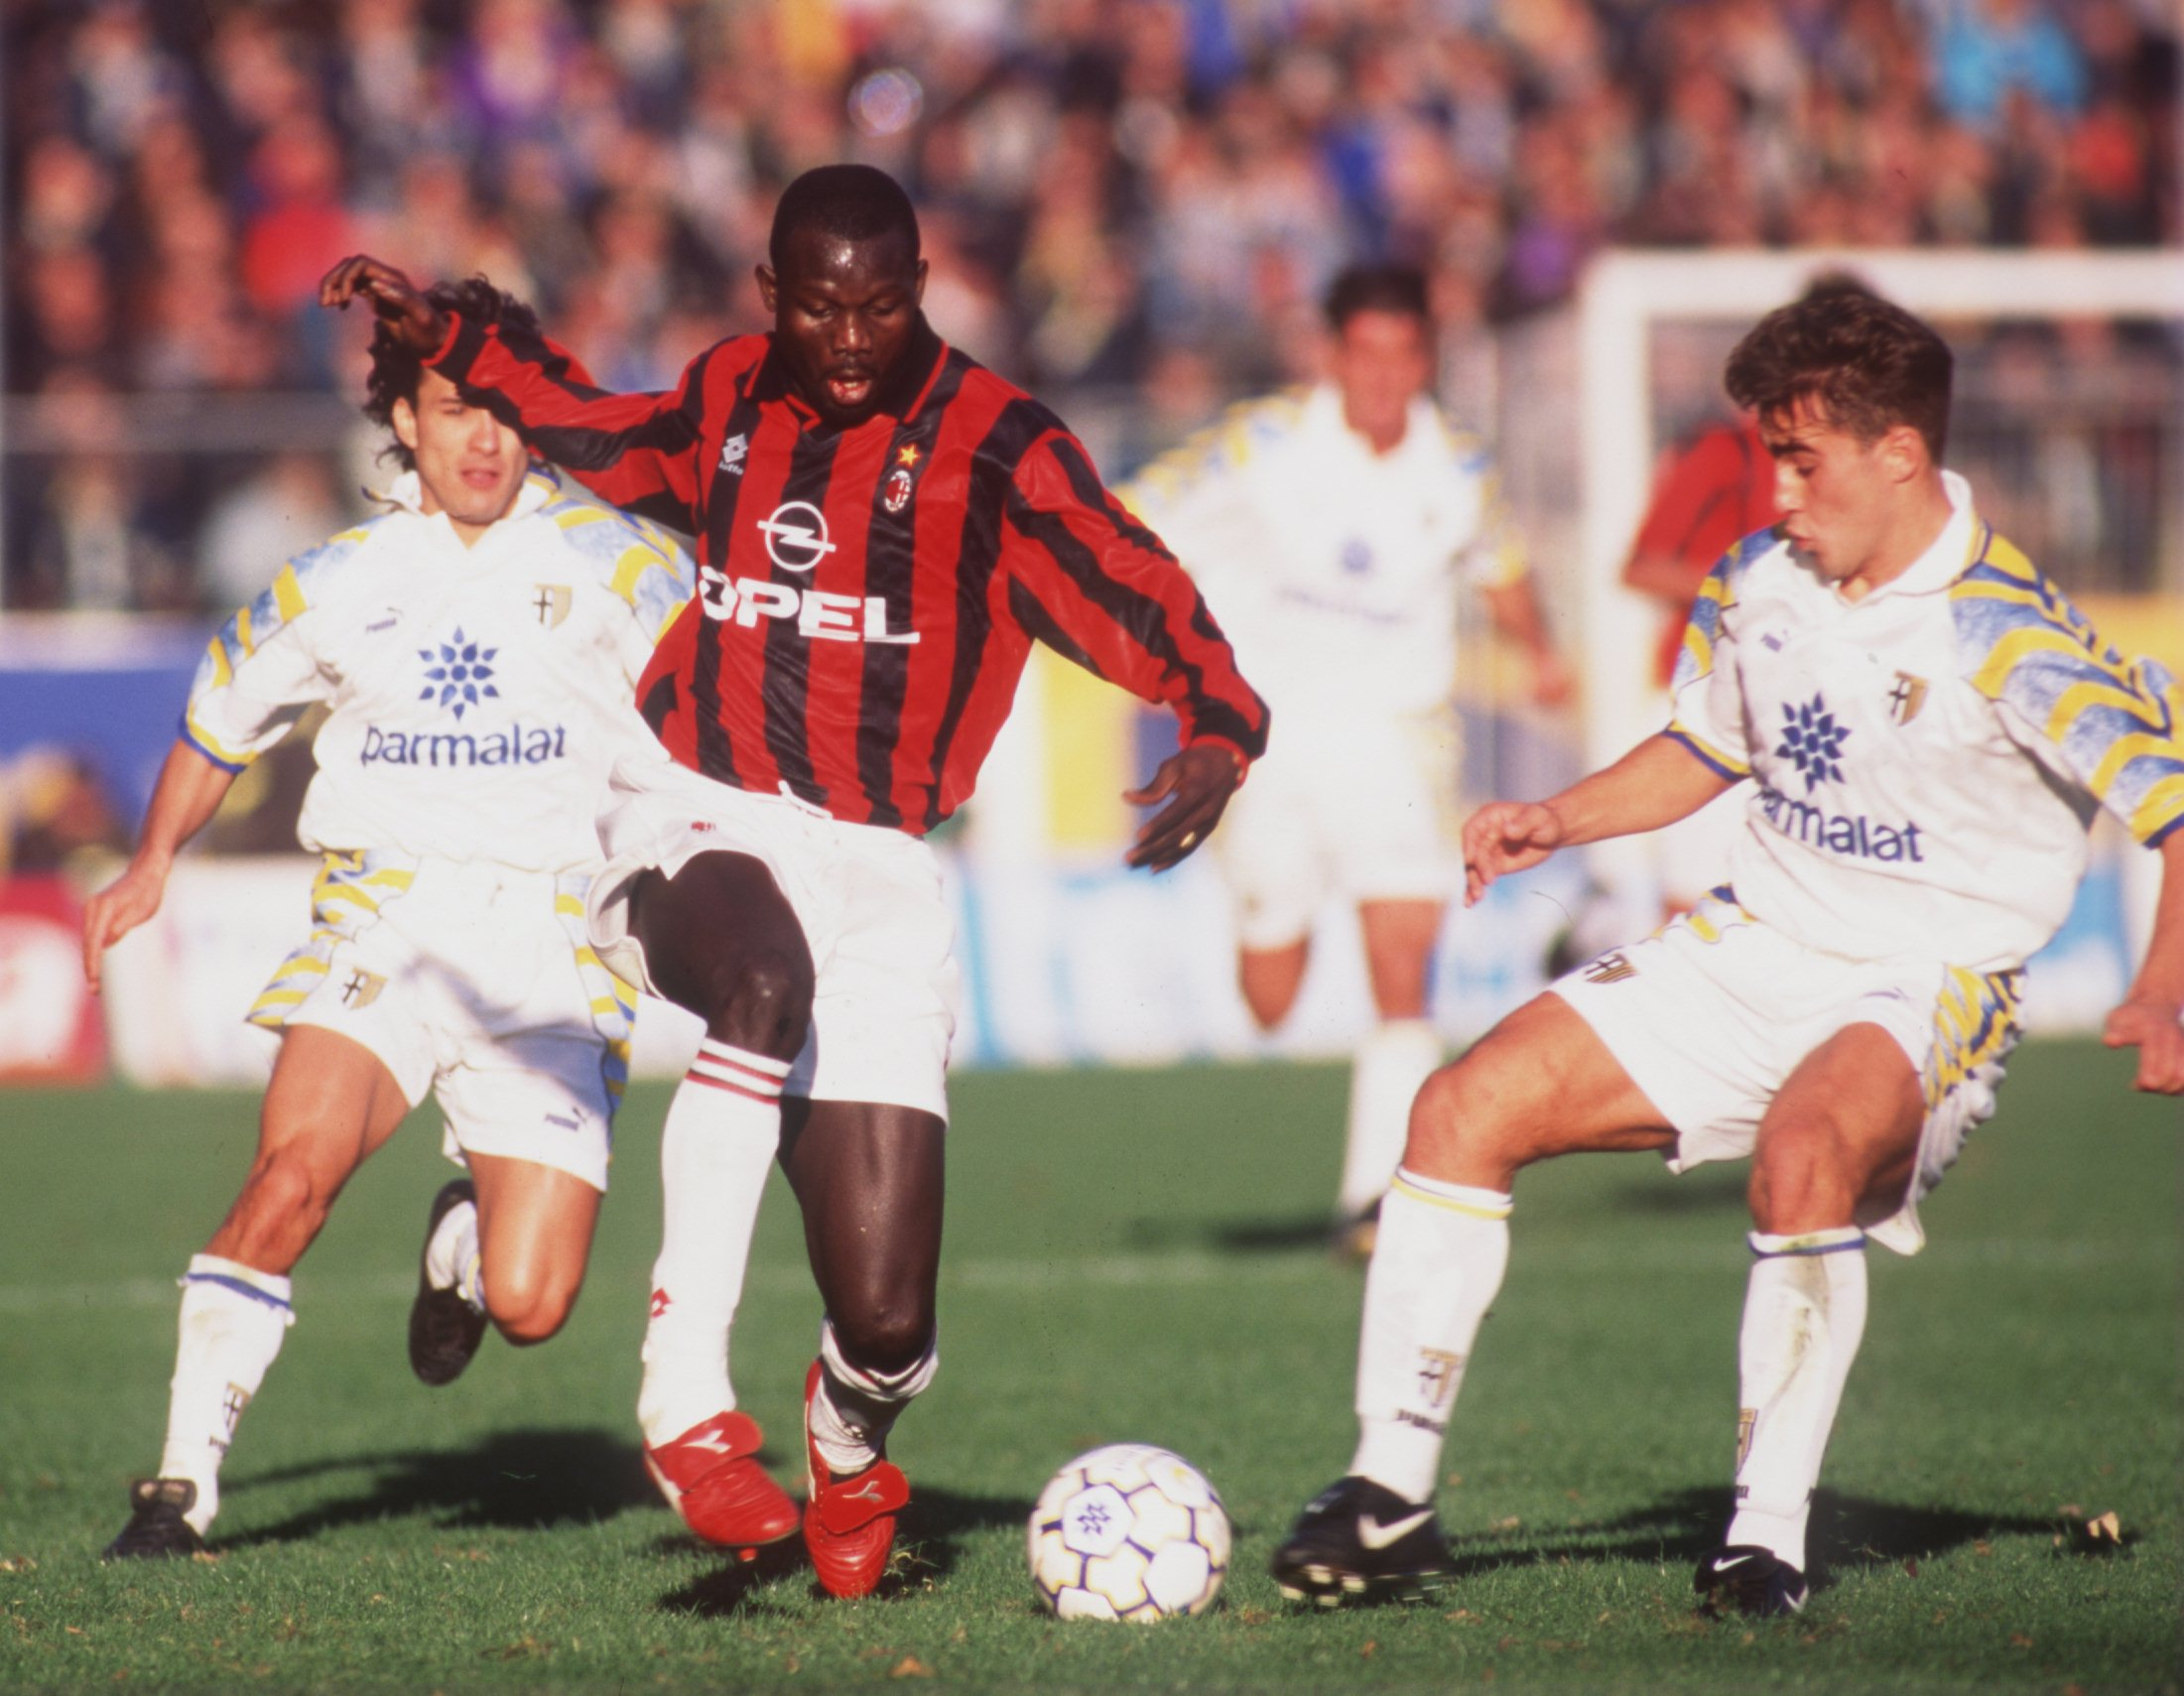 Remembering the legends of football – George Weah